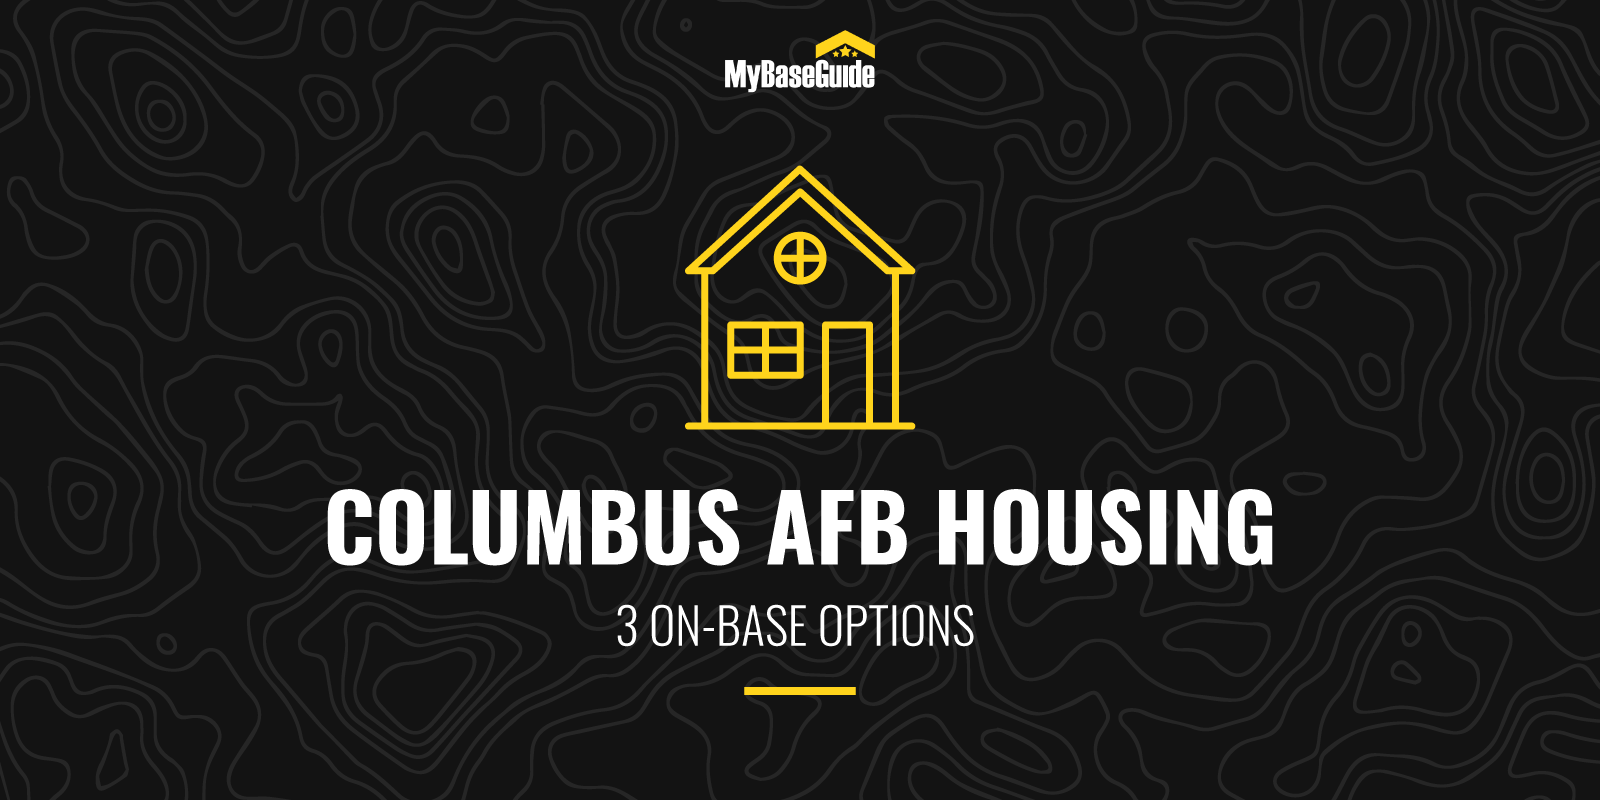 Columbus AFB Housing: 3 On-Base Options